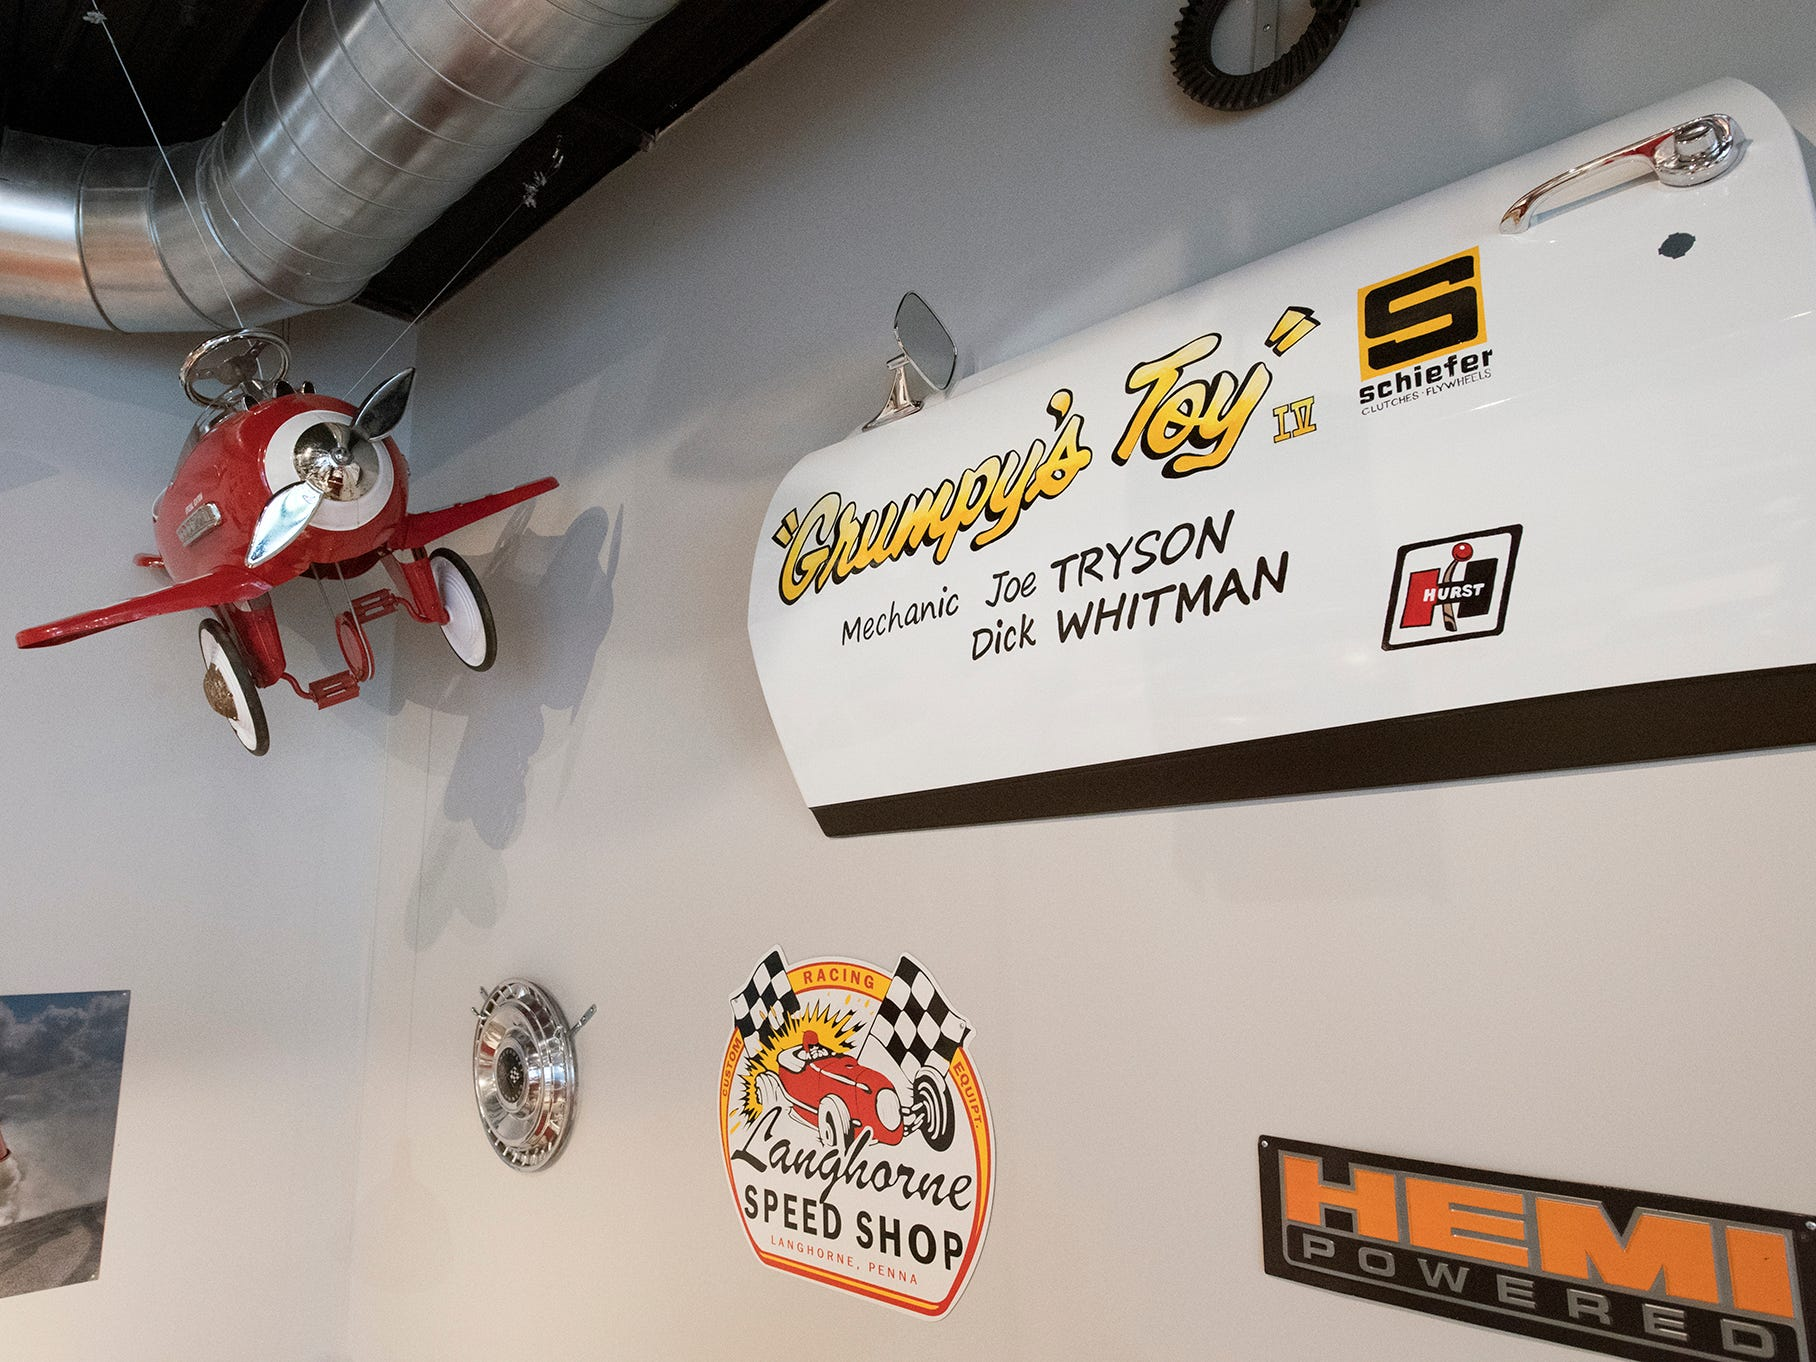 Some of the wall decorations at Johnny's Raceway Eatery were sourced from Jerry Shaffer's racing cars Tuesday January 8, 2019.